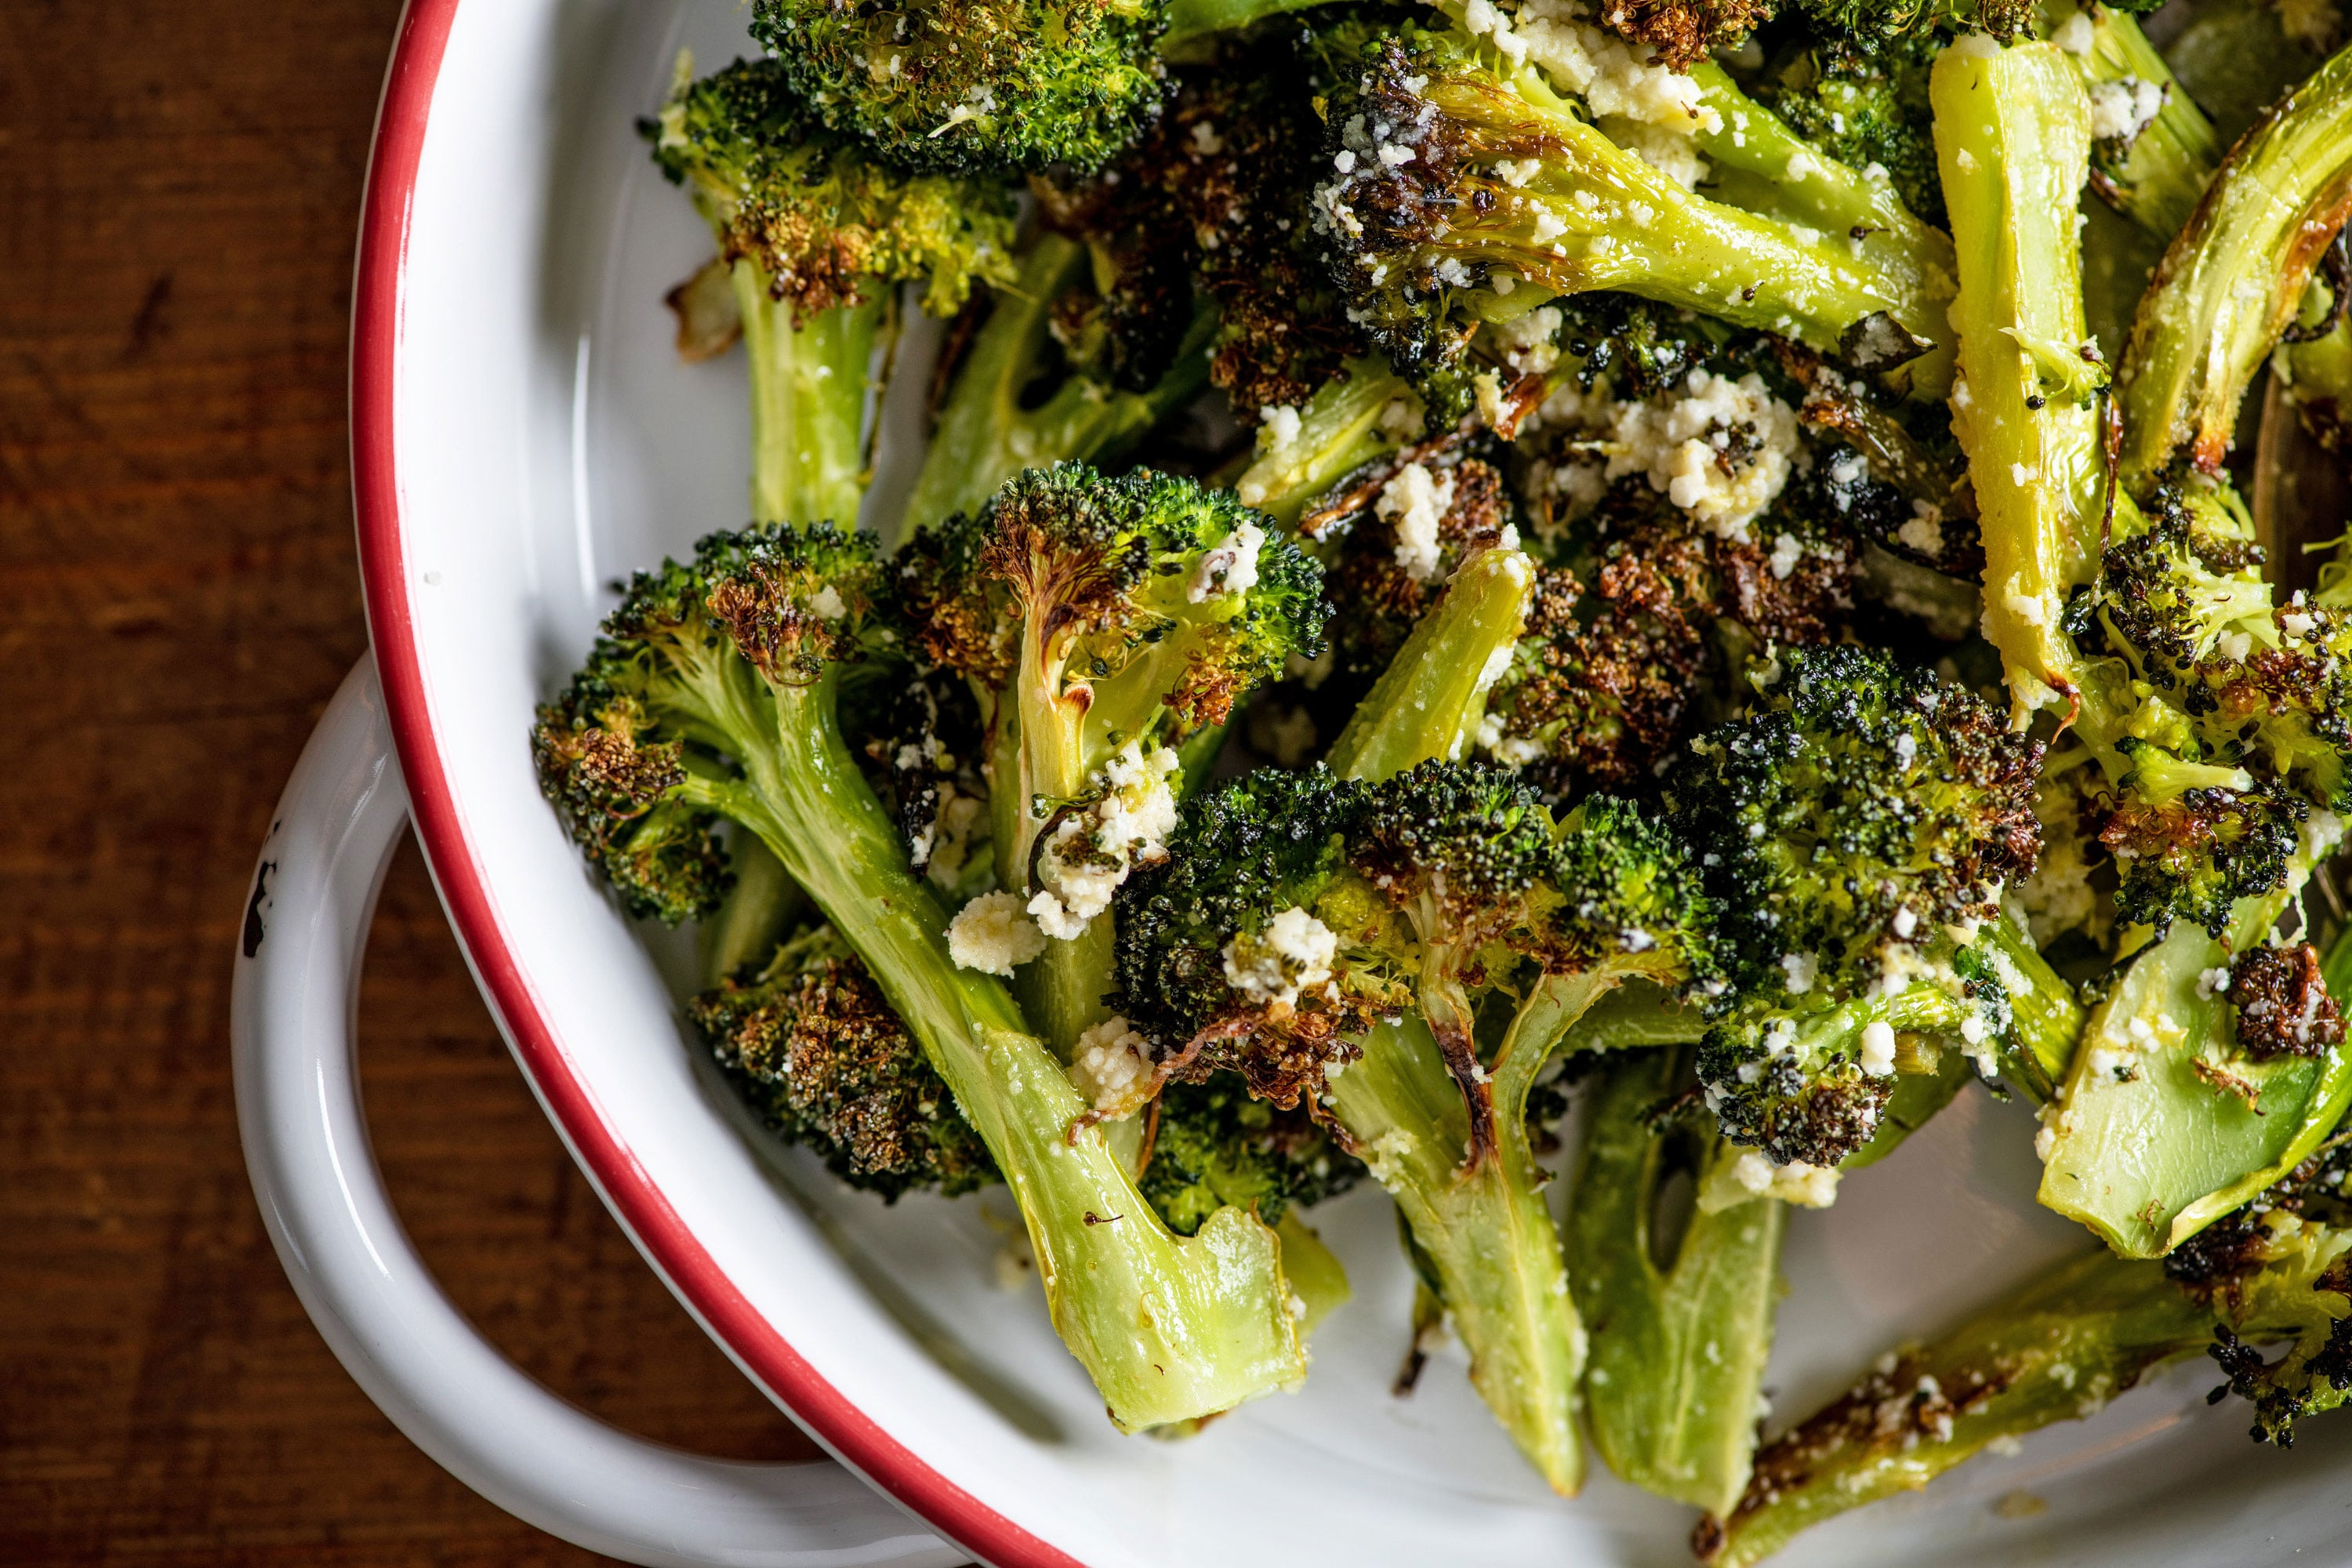 Best Parmesan Roasted Broccoli Quick And Easy The Mom 100